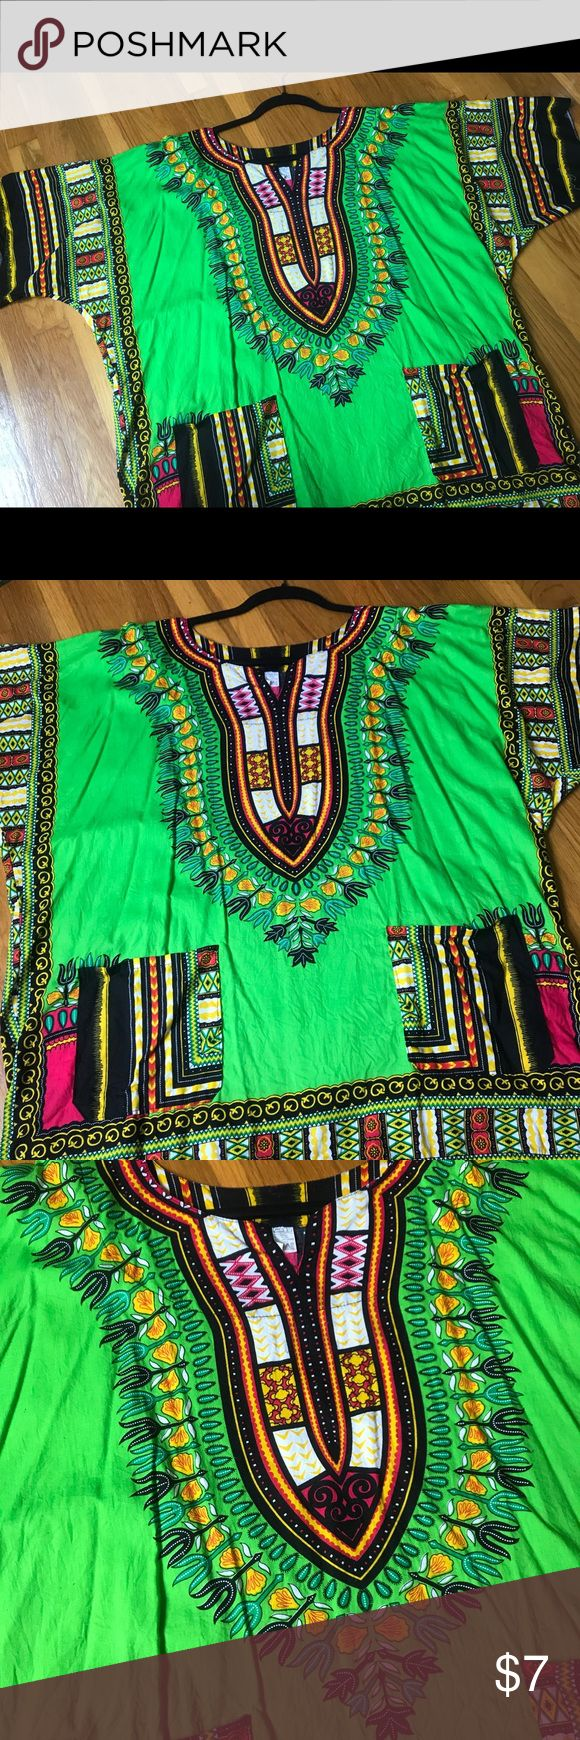 Lime Green Dashiki Shirt Dashiki shirt from Jamaica / OSFA from Small to Large / Great condition Tops